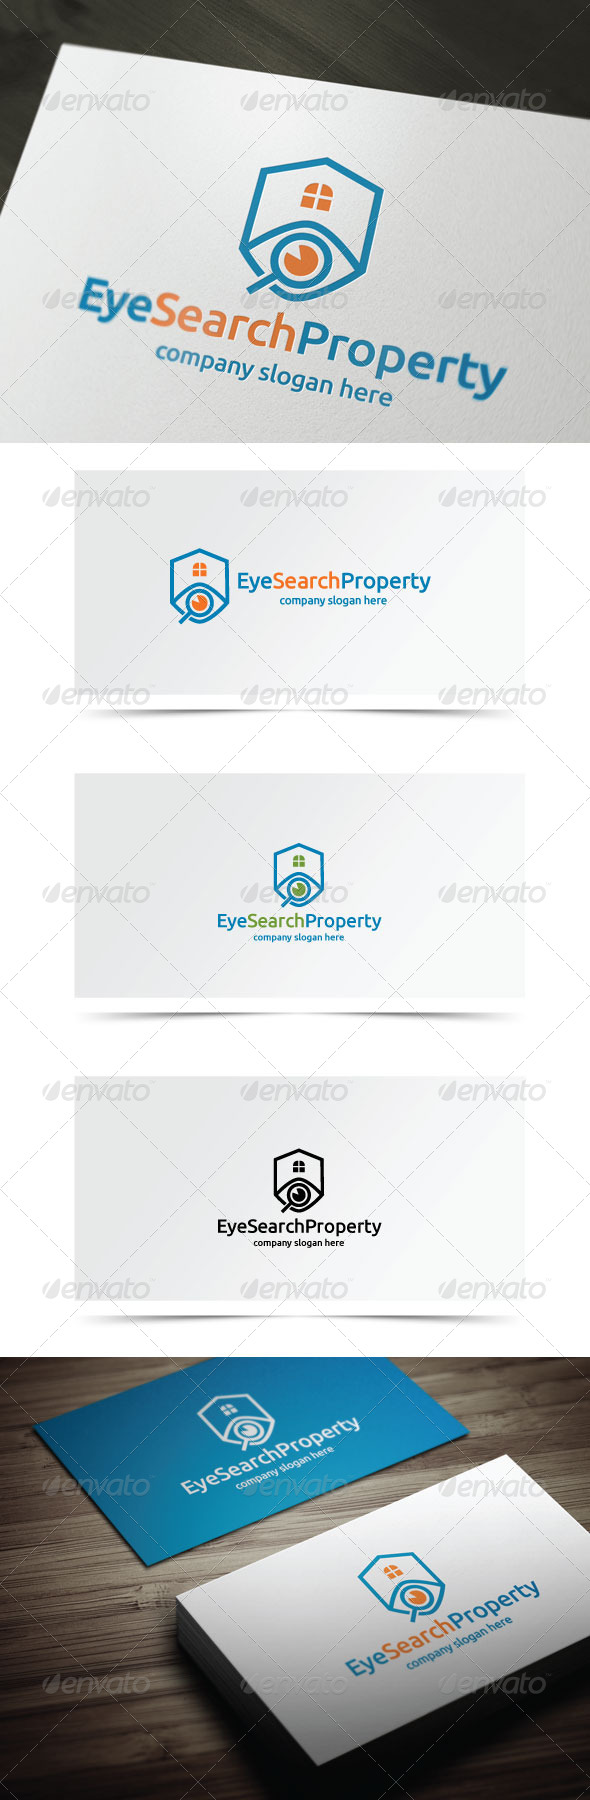 GraphicRiver Eye Search Property 7743382